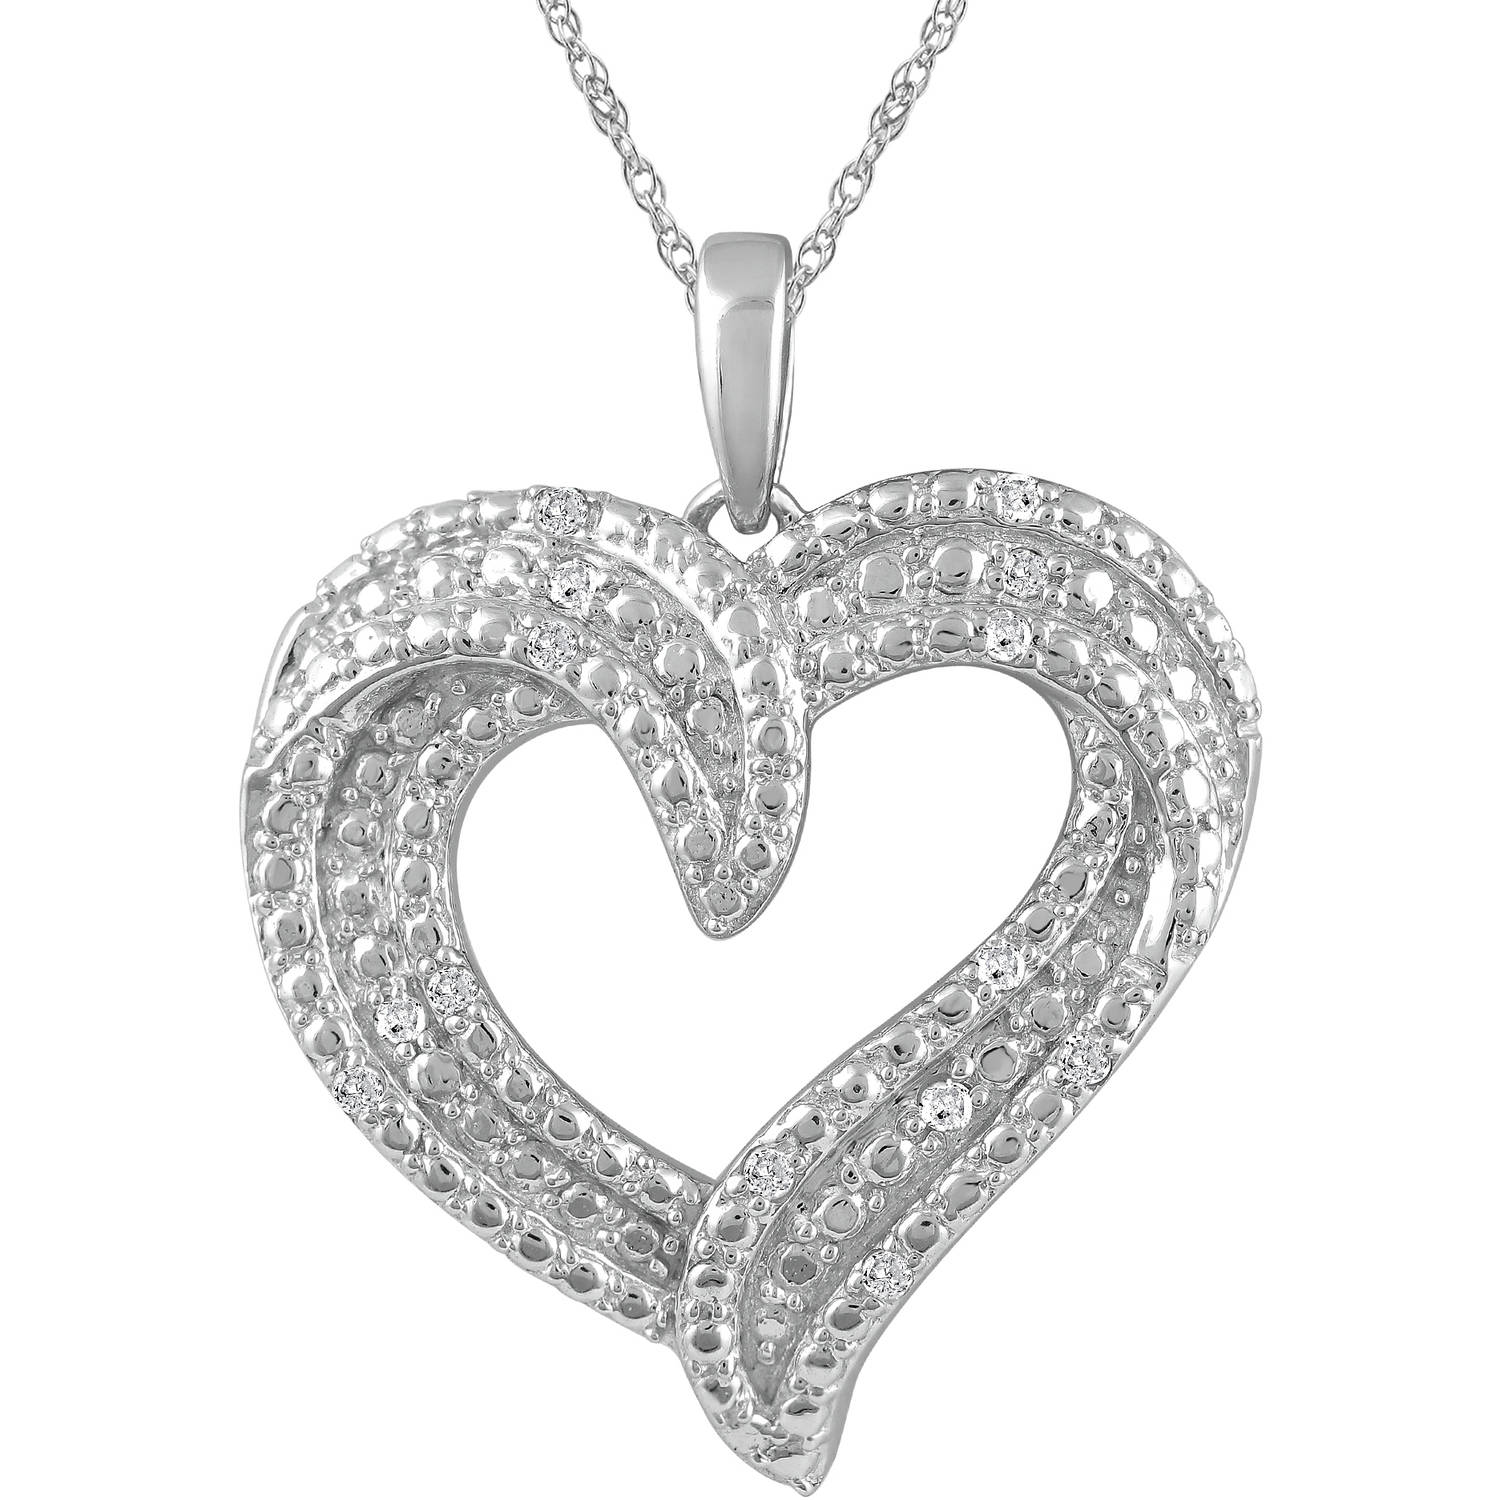 jewelry on diamond authorized page fire hearts intermingle heart product rhr designers dealer category c single